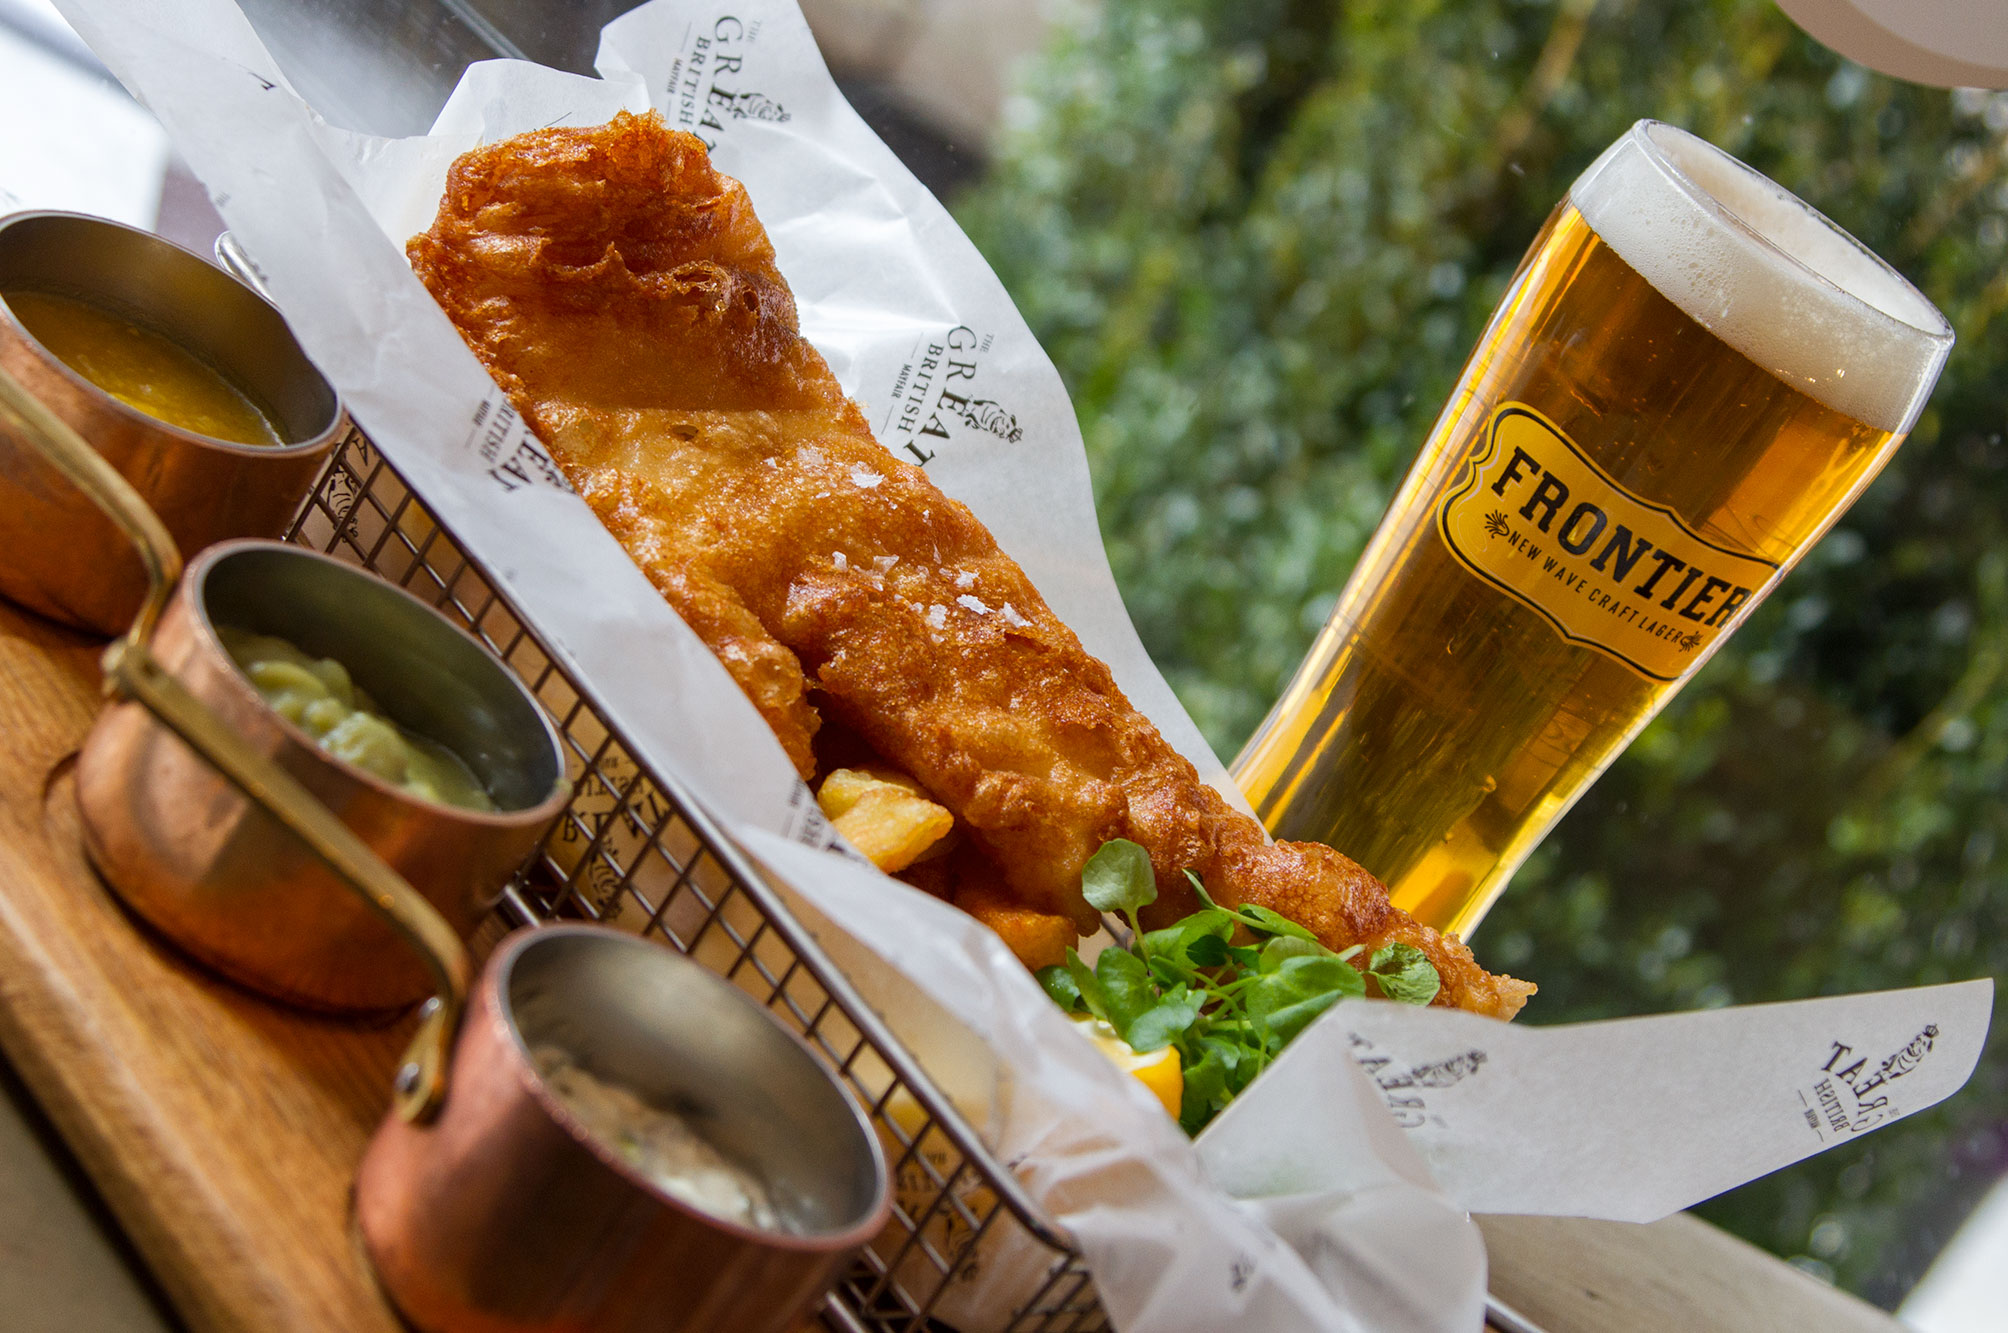 The Great British Fish And Chips